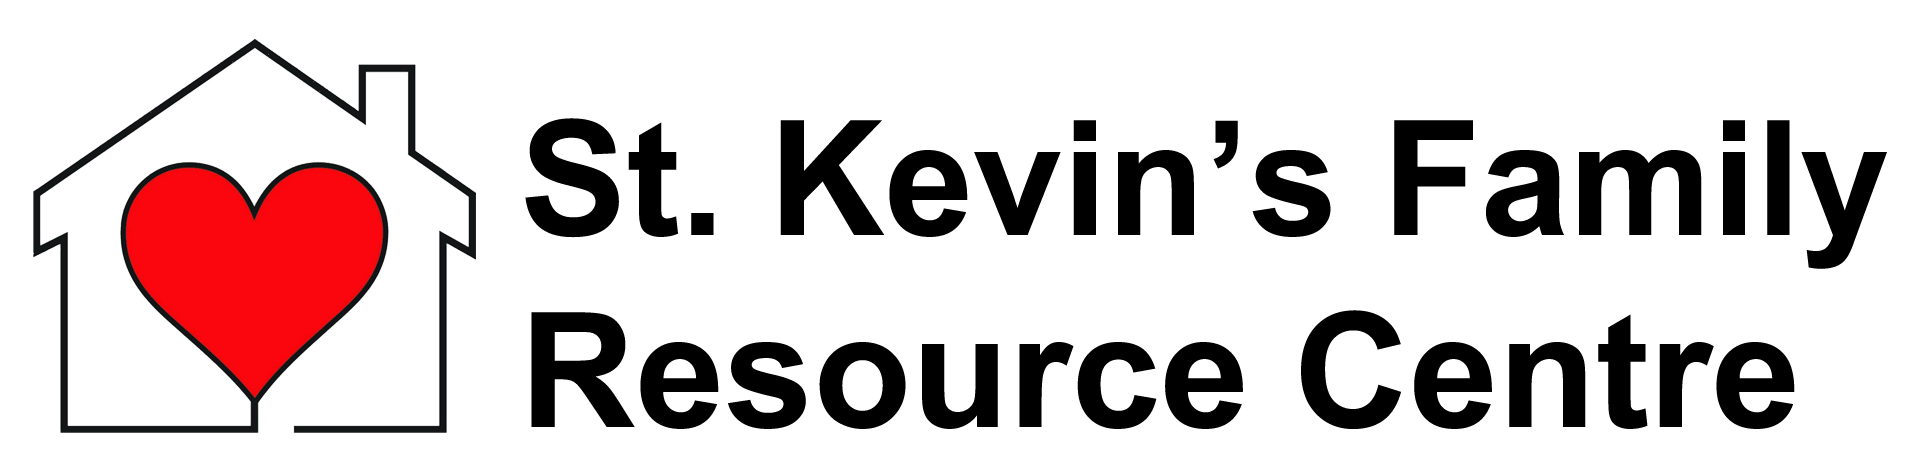 St Kevin's Family Resource Centre